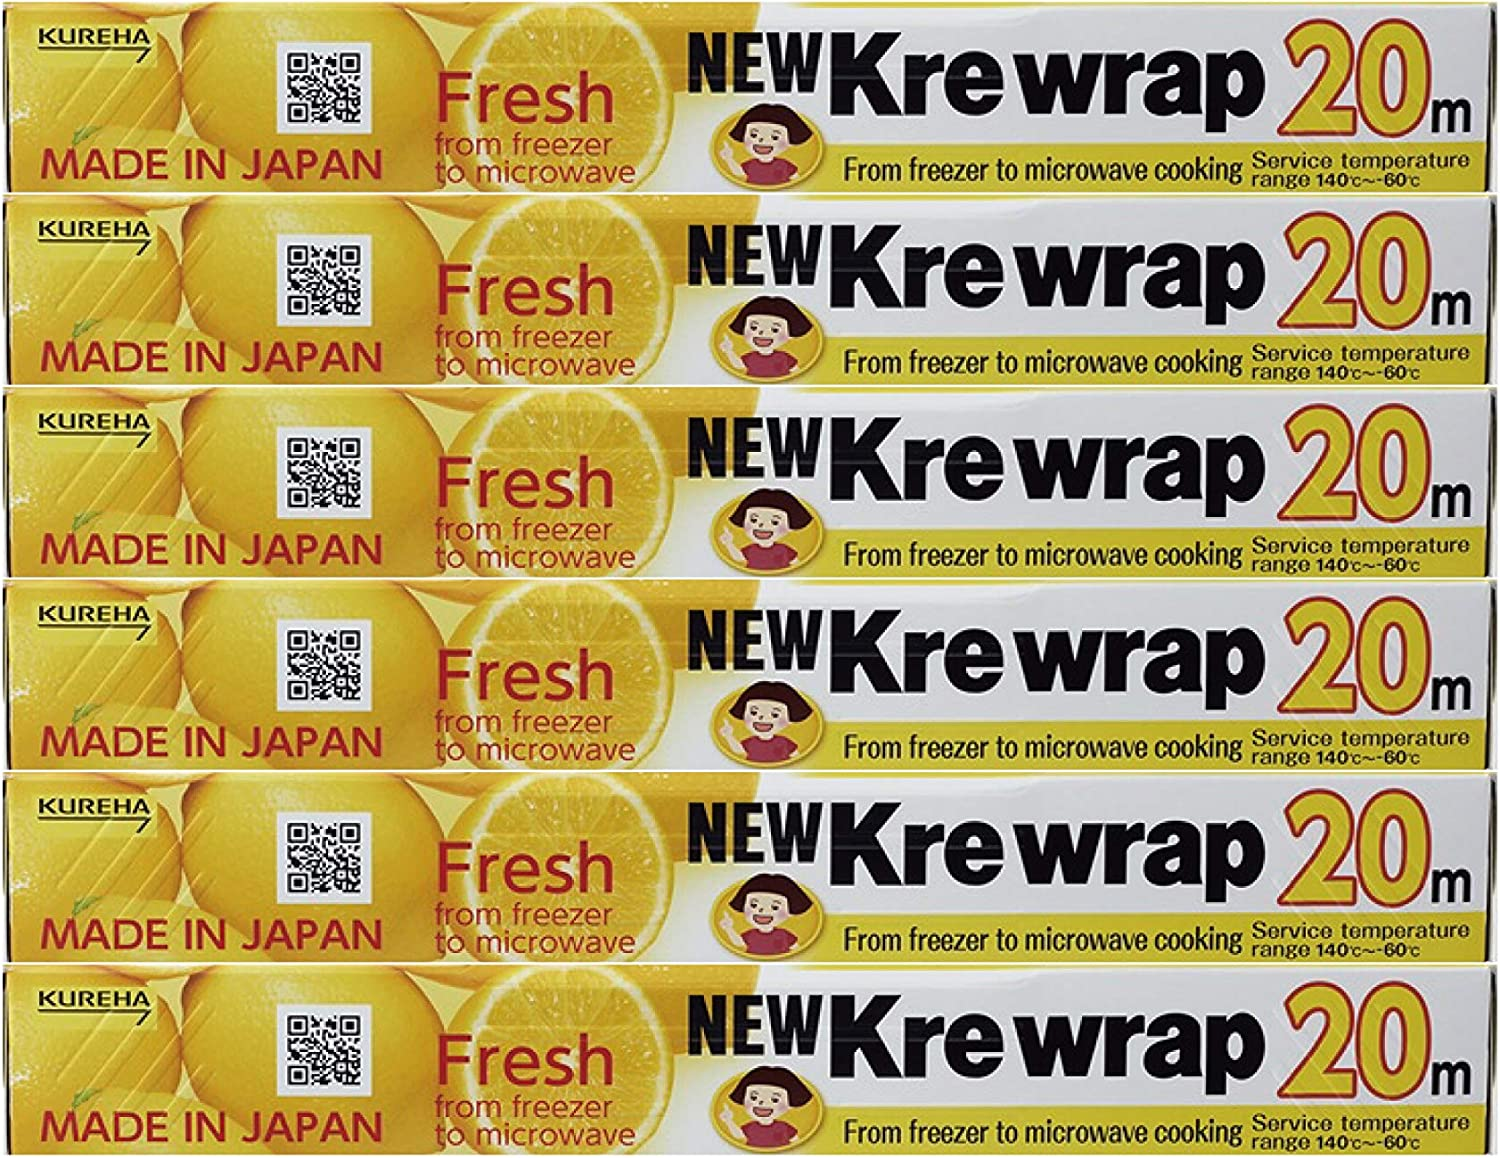 KUREHA NEW Krewrap Plastic Food Wrap, 65 Sq Ft, Pack of 6, Clear